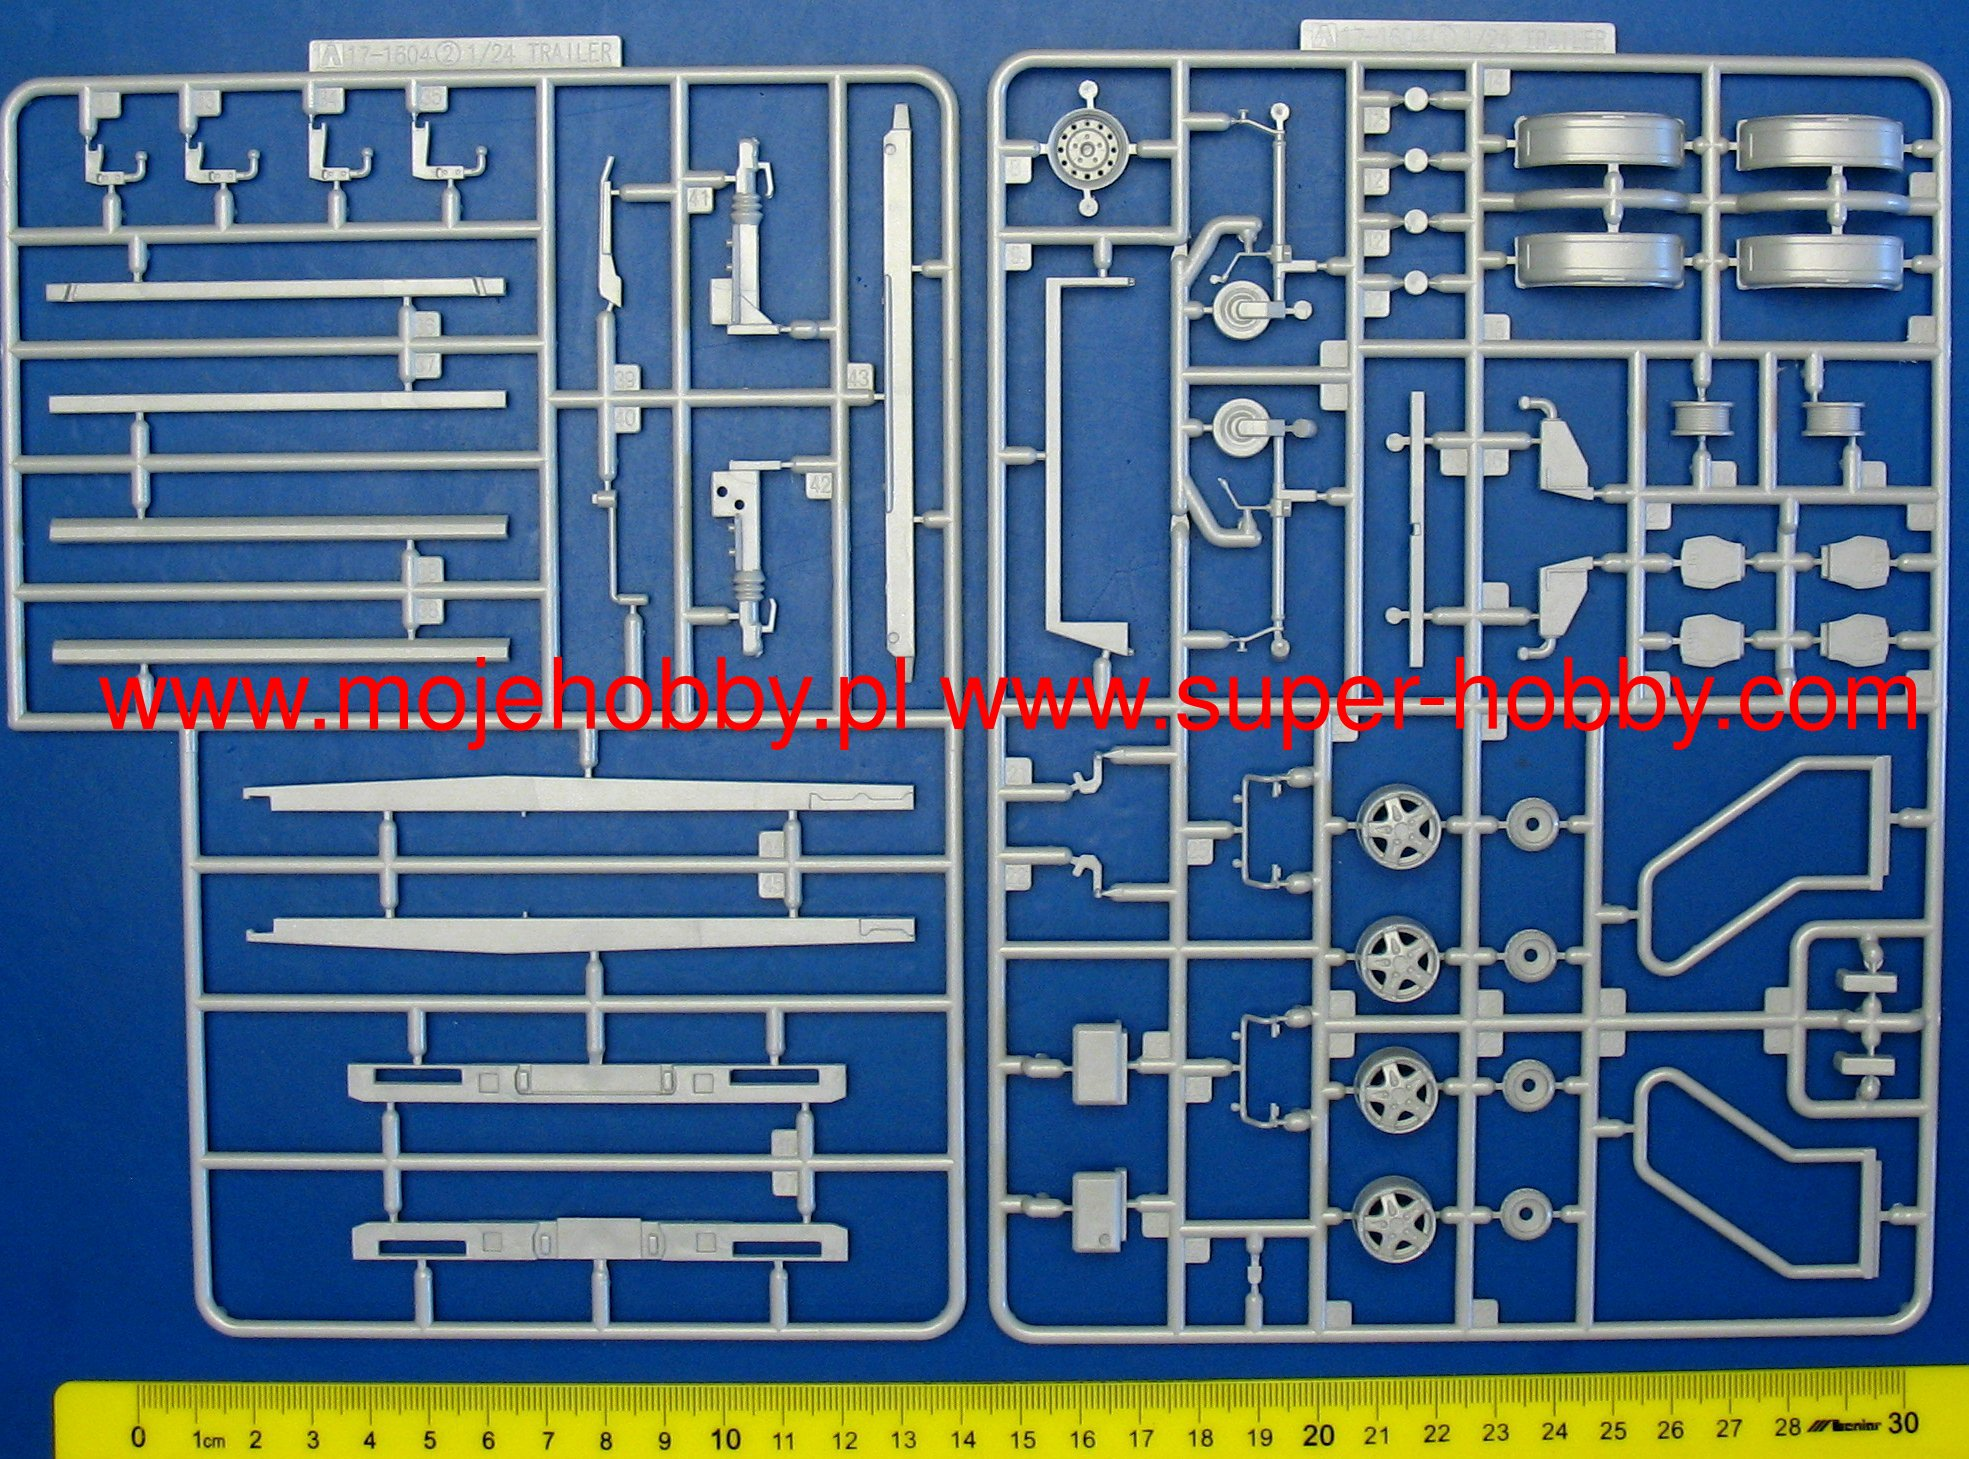 Wiring Diagram For Brian James Trailer - WIRE Center •